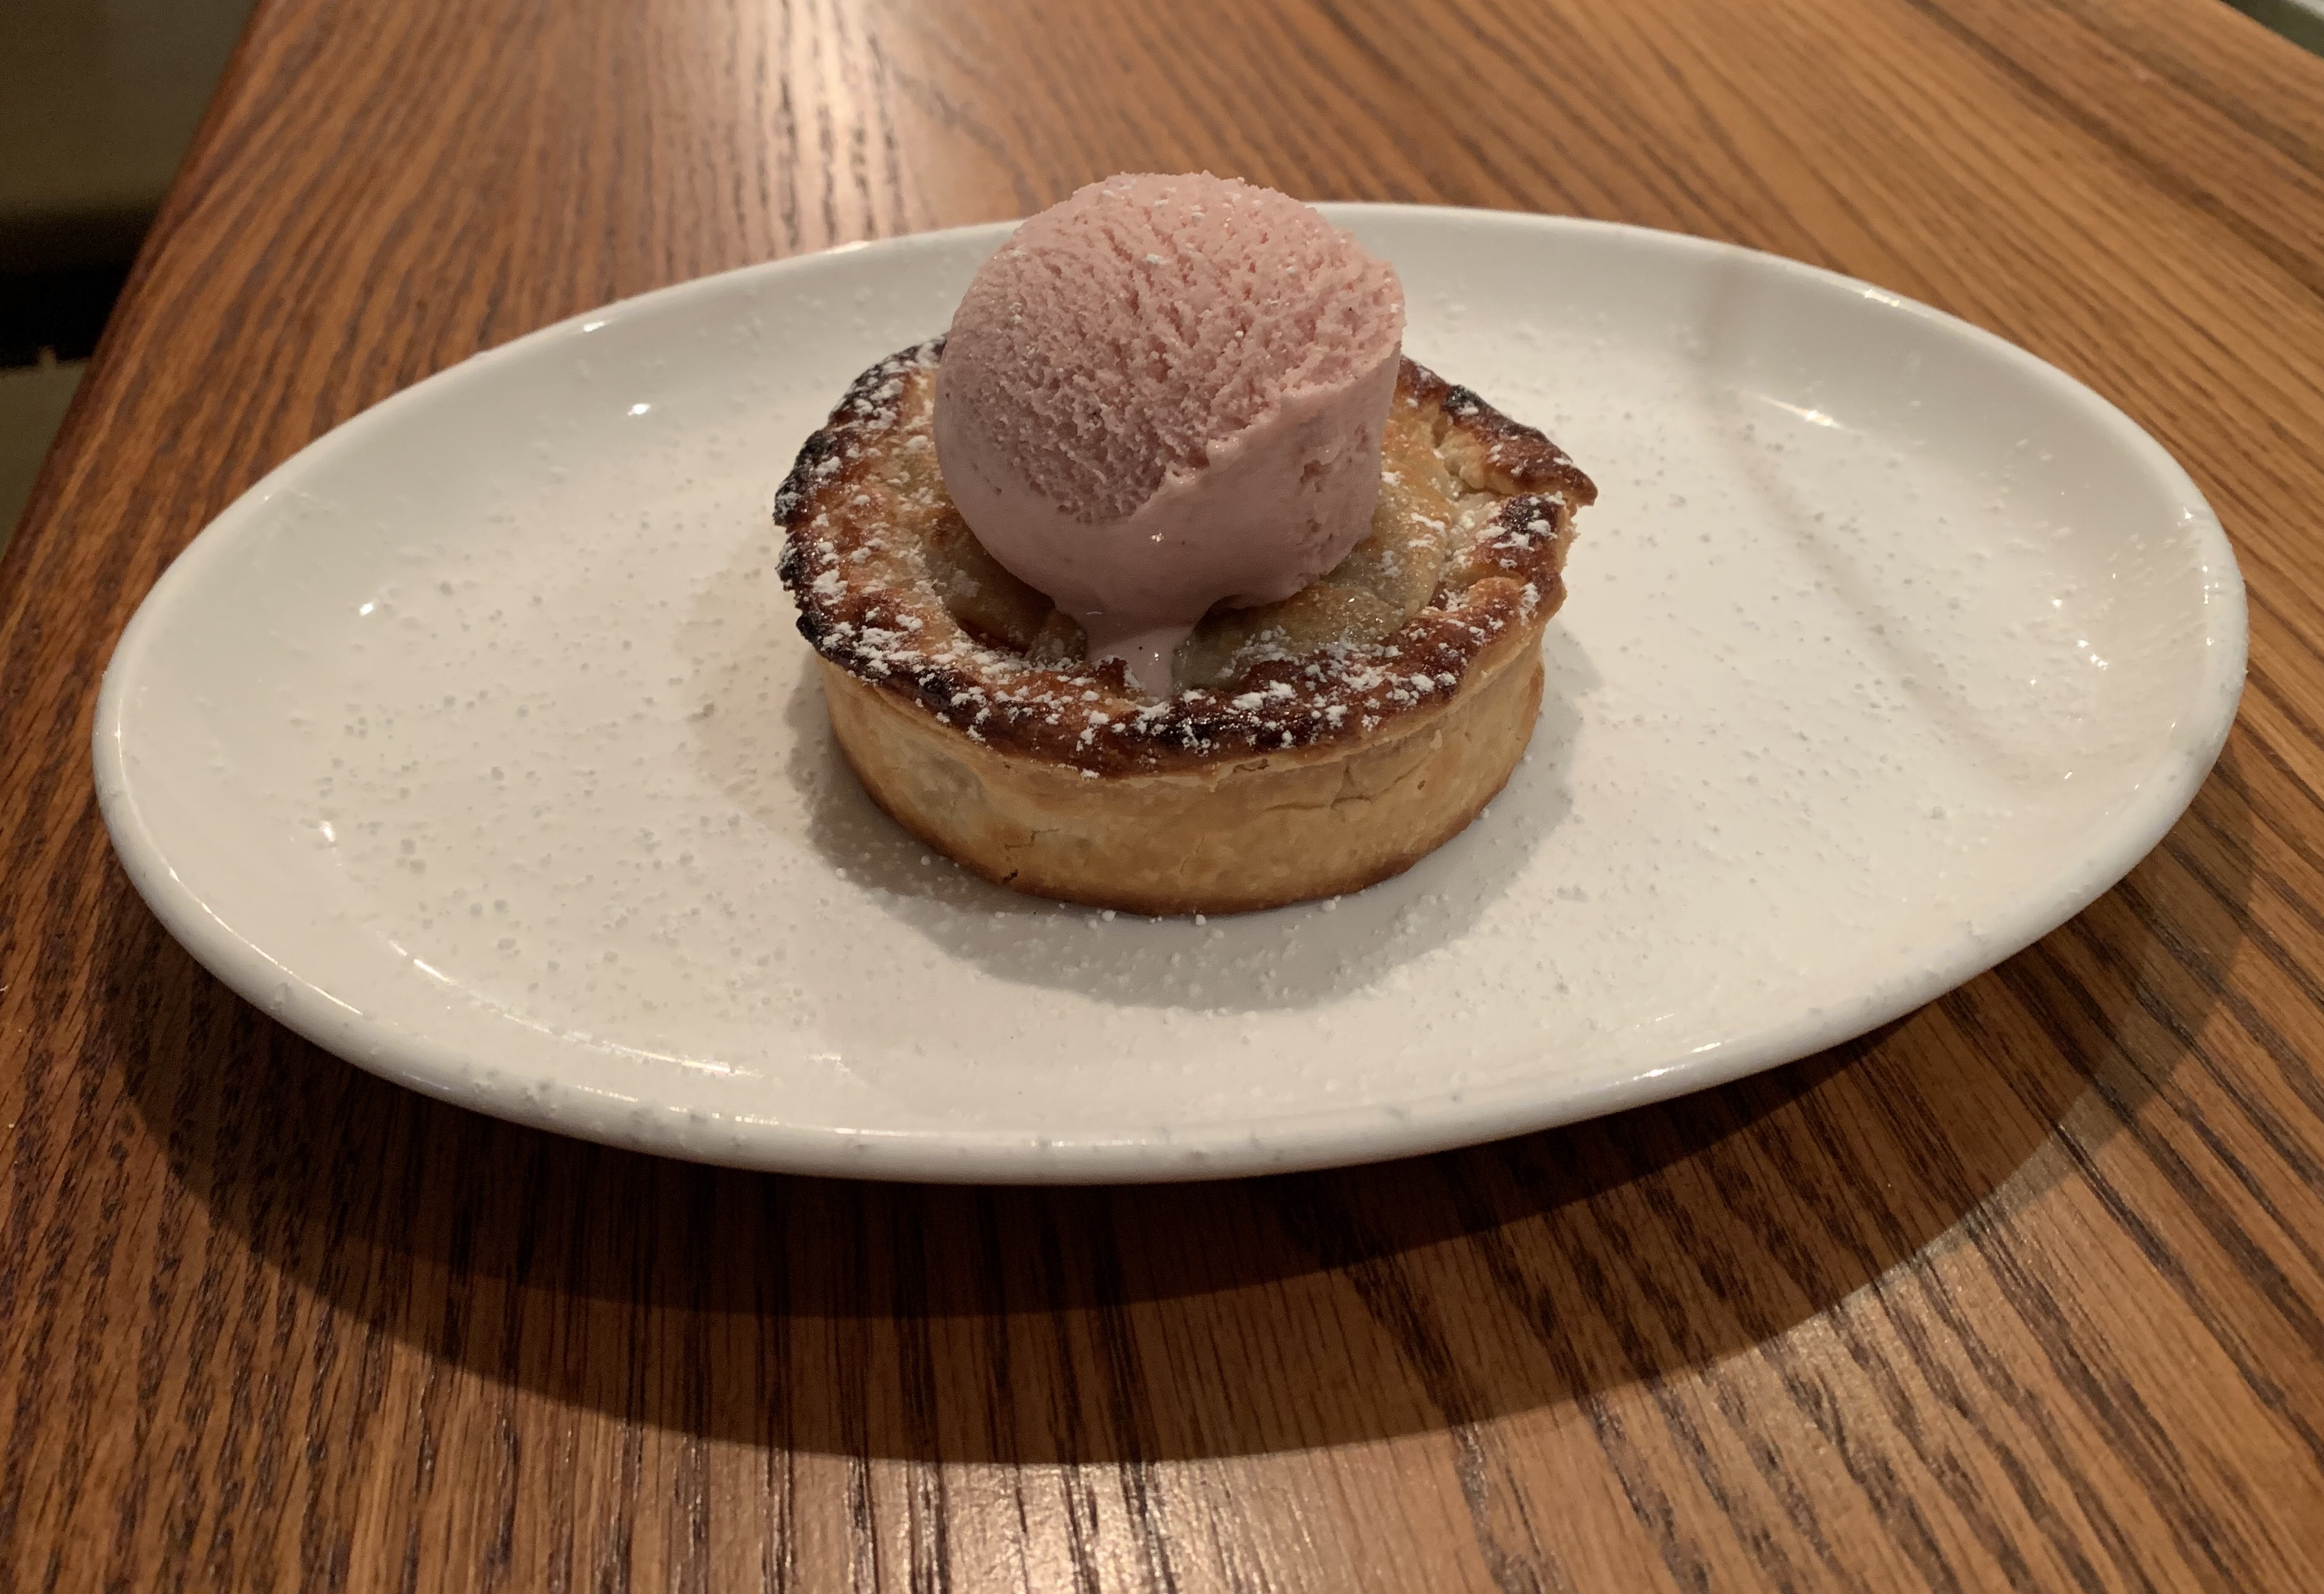 Urbana's Pastry Chef Chi Phan is featuring a mini fruit pie made with local strawberries and rhubarb. The buttery crust is dusted with powdered sugar and topped with a scoop of strawberry ice cream churned in house. (Image: Courtesy Urbana)<p></p>